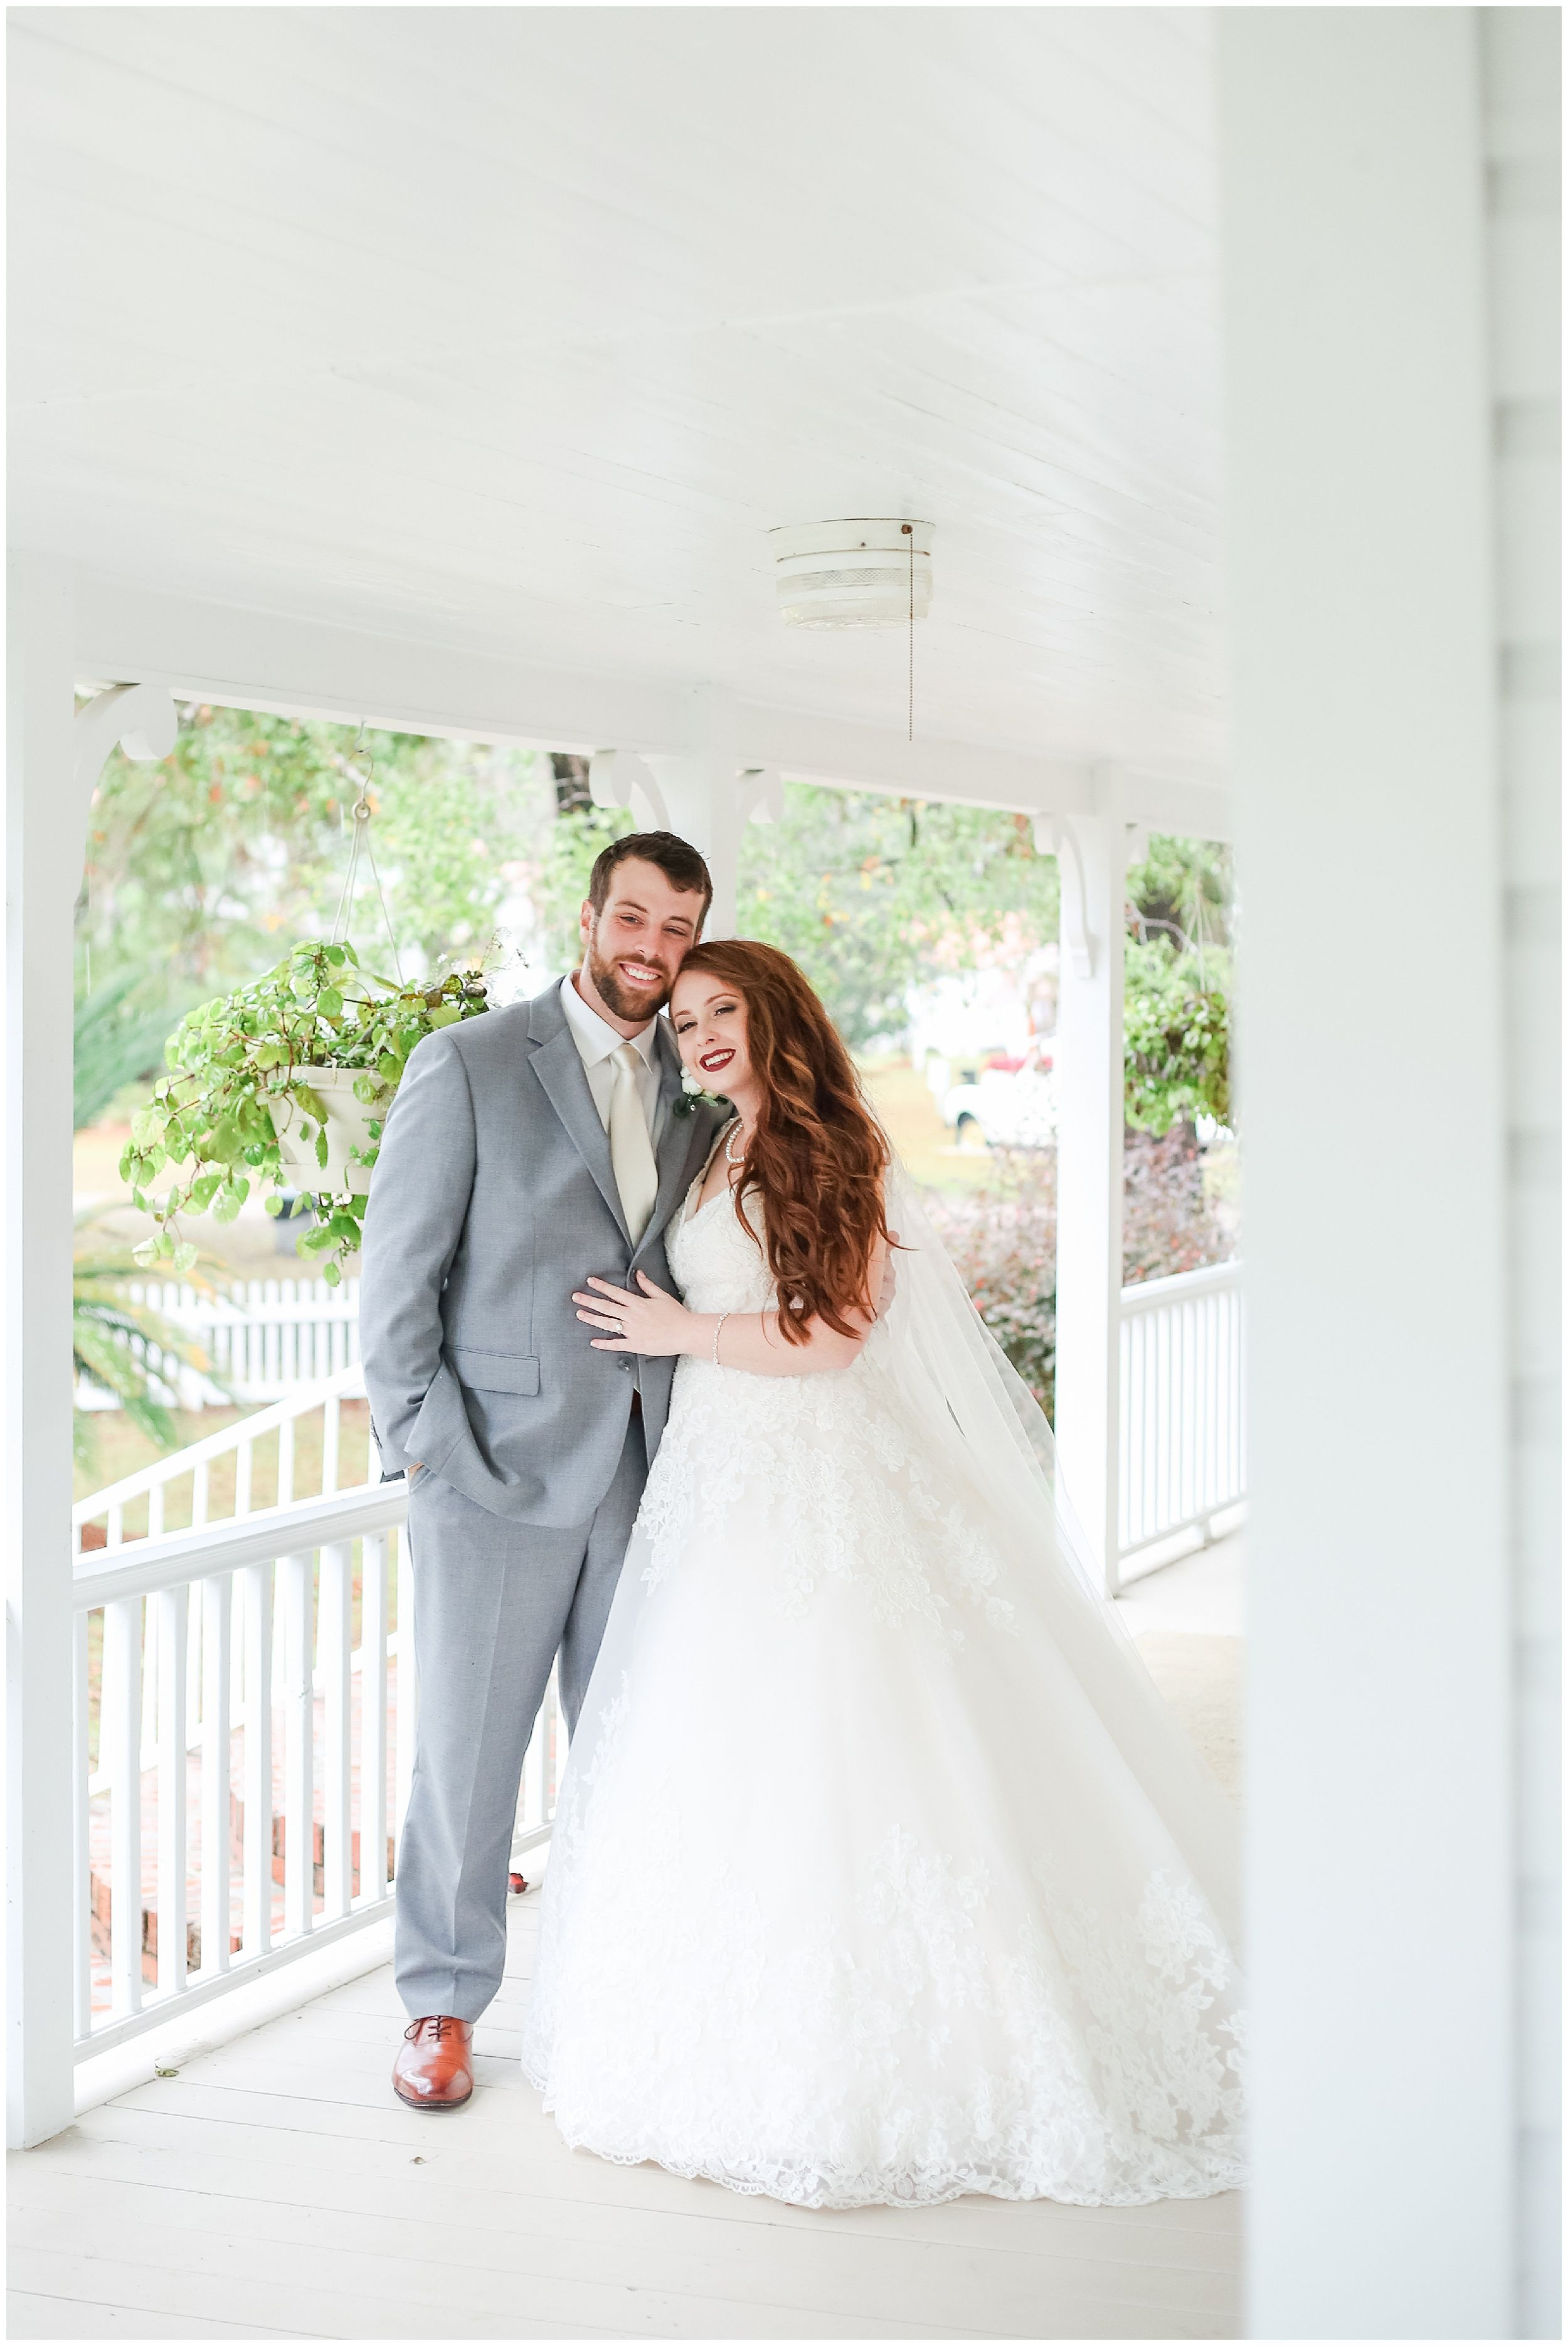 Bold Colors And Geometric Details Have Us Swooning Over This Florida Spanish Farmhouse Wedding Love Inc Mag Lesbian Wedding Photography Lesbian Wedding Romantic Wedding Photos